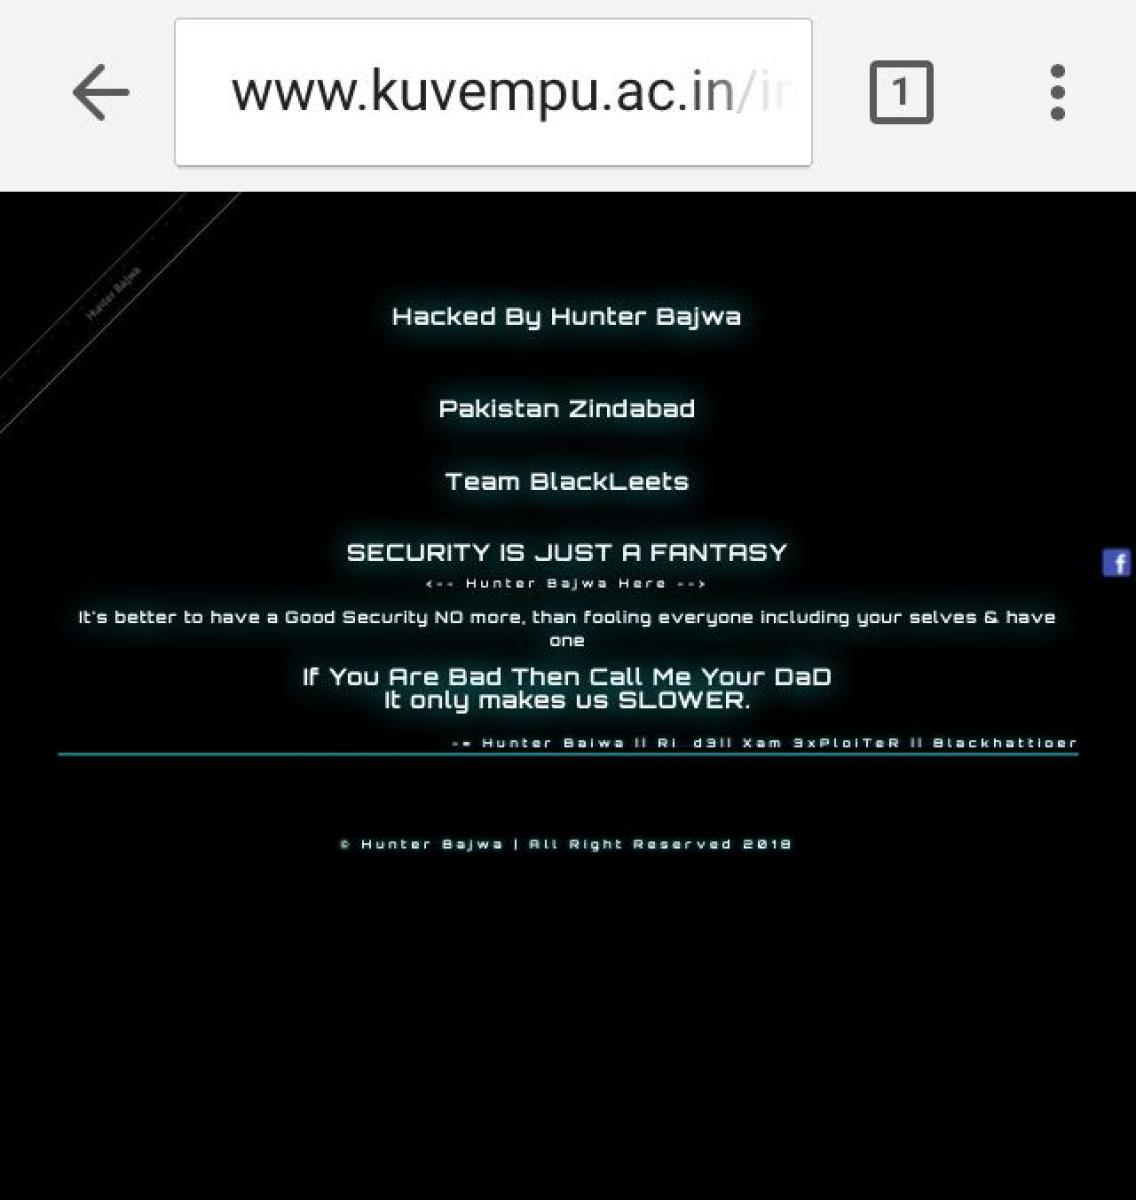 A message that reads 'Pakistan zindabad' posted on Kuvempu University official website that was hacked.